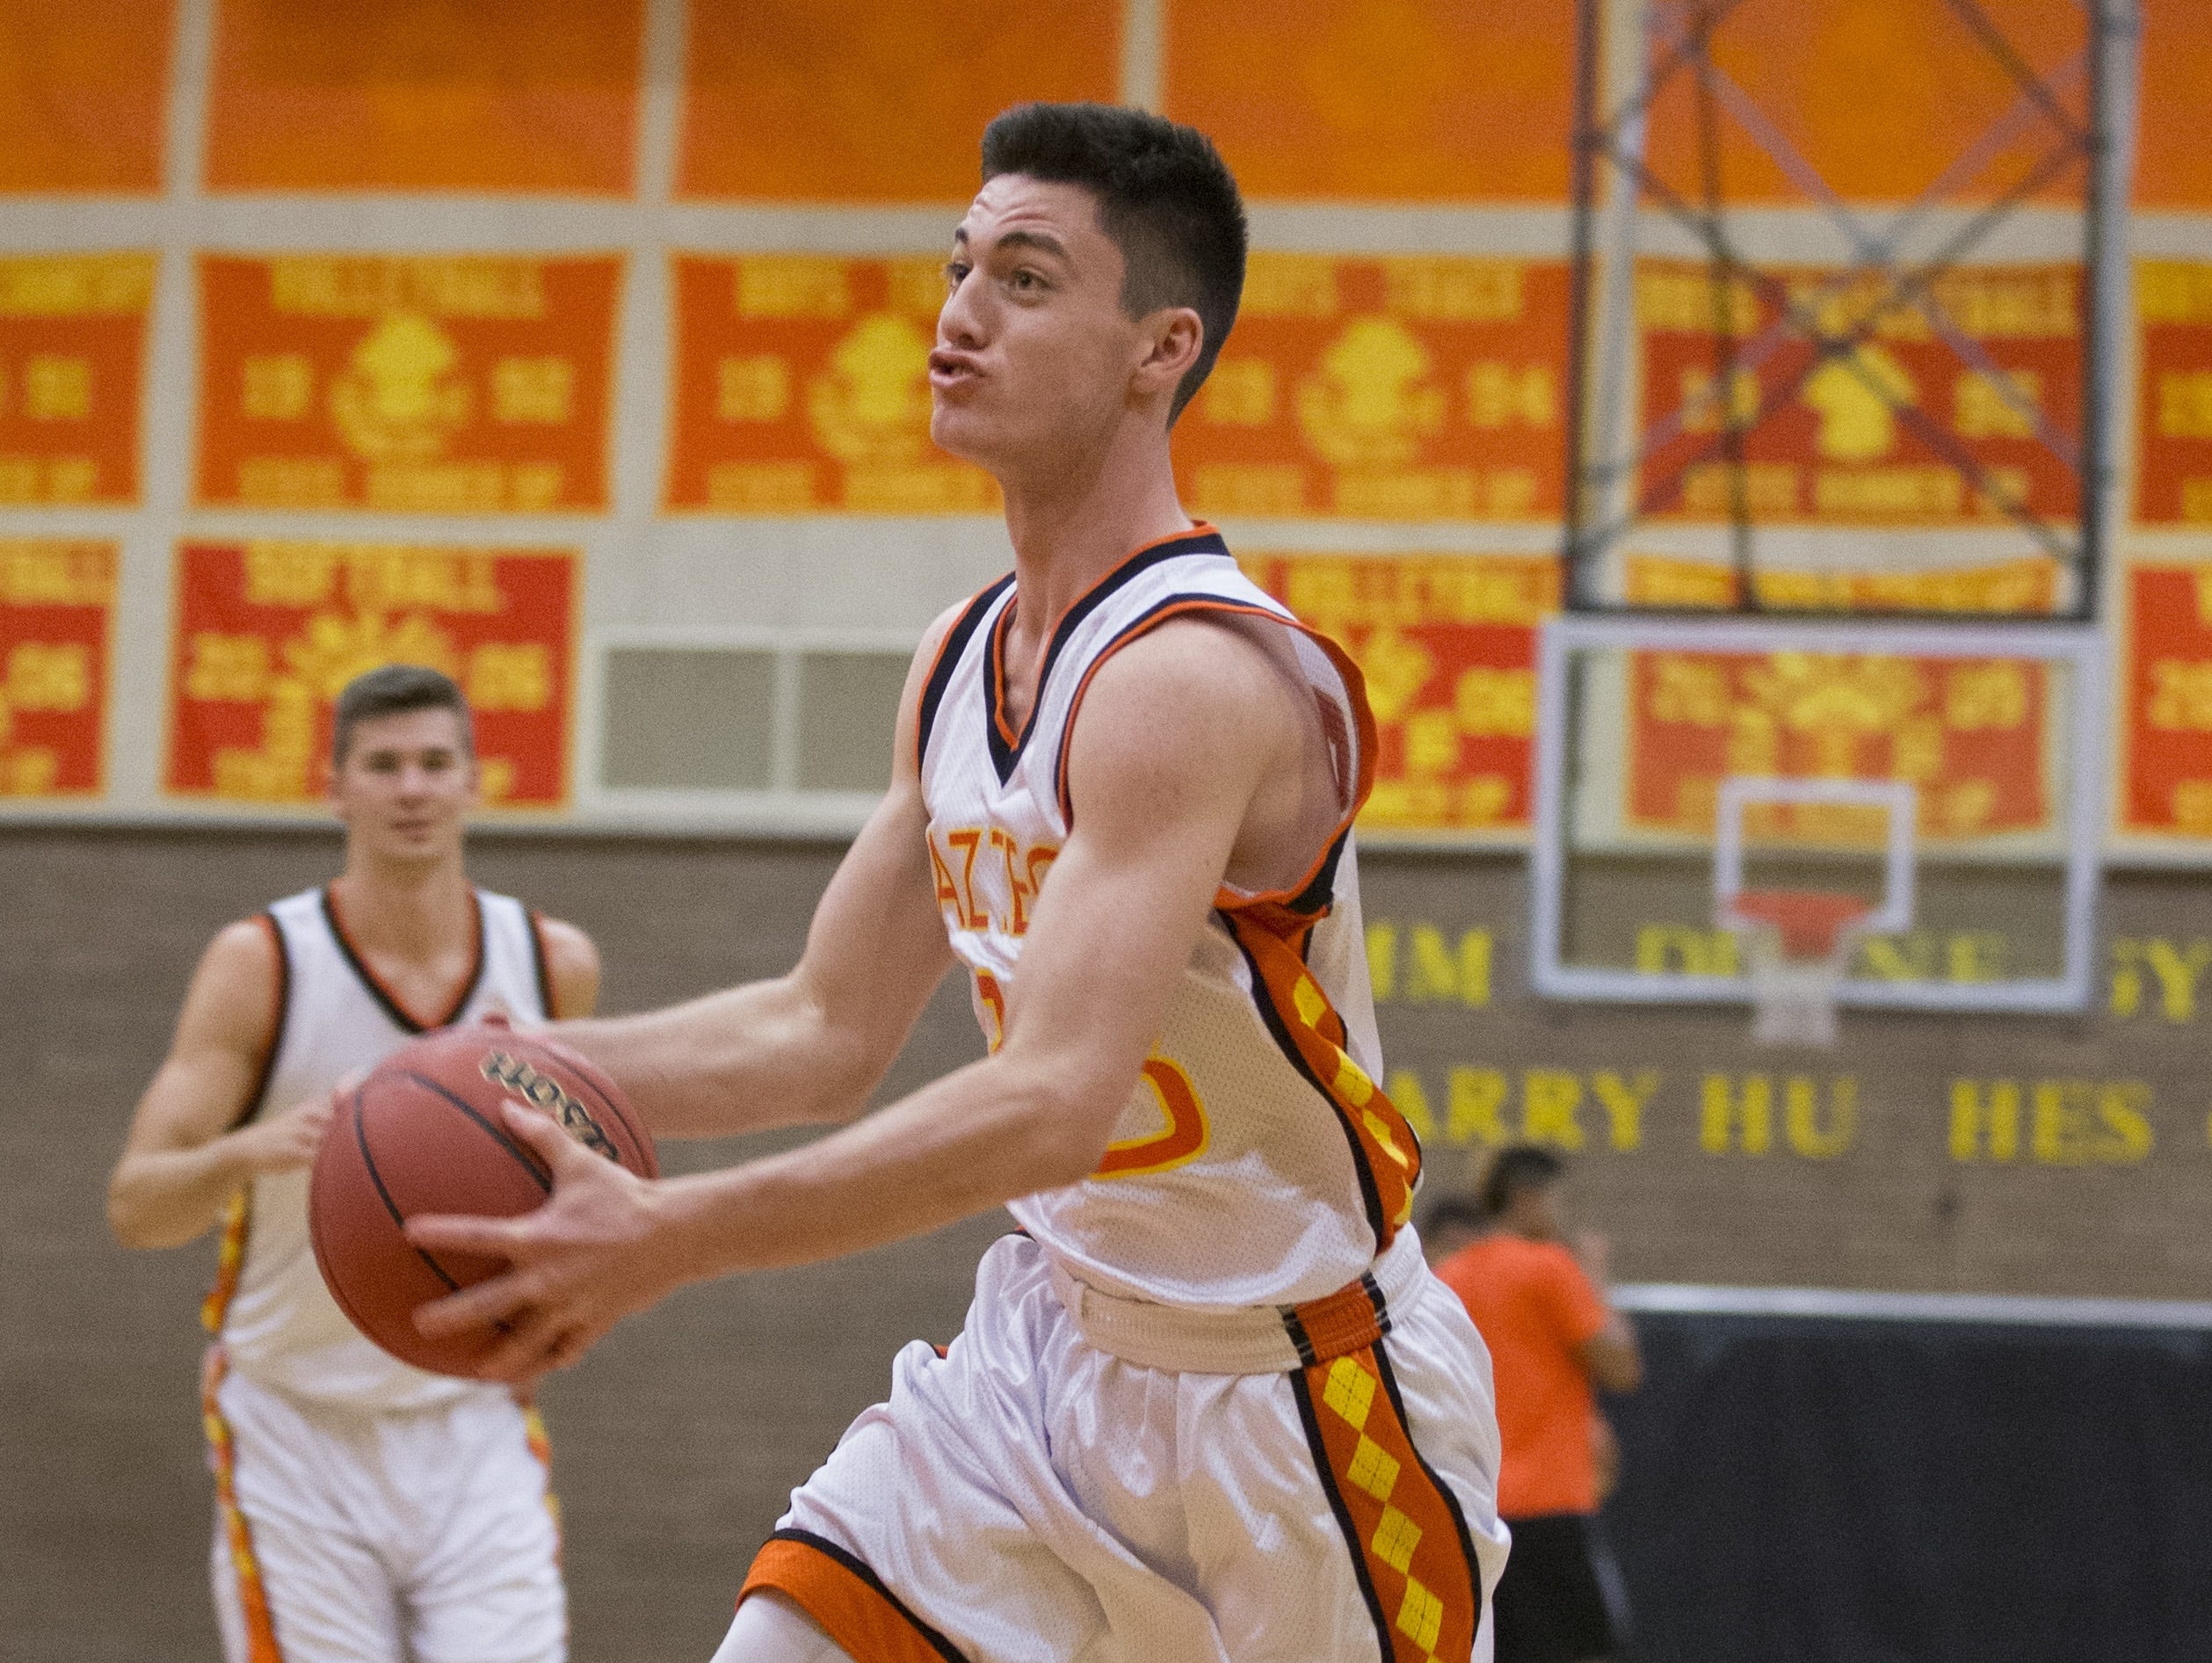 Corona del Sol basketball player Alex Barcello goes up for a layup while playing two on two at the school's gym in Tempe on April 16, 2015.